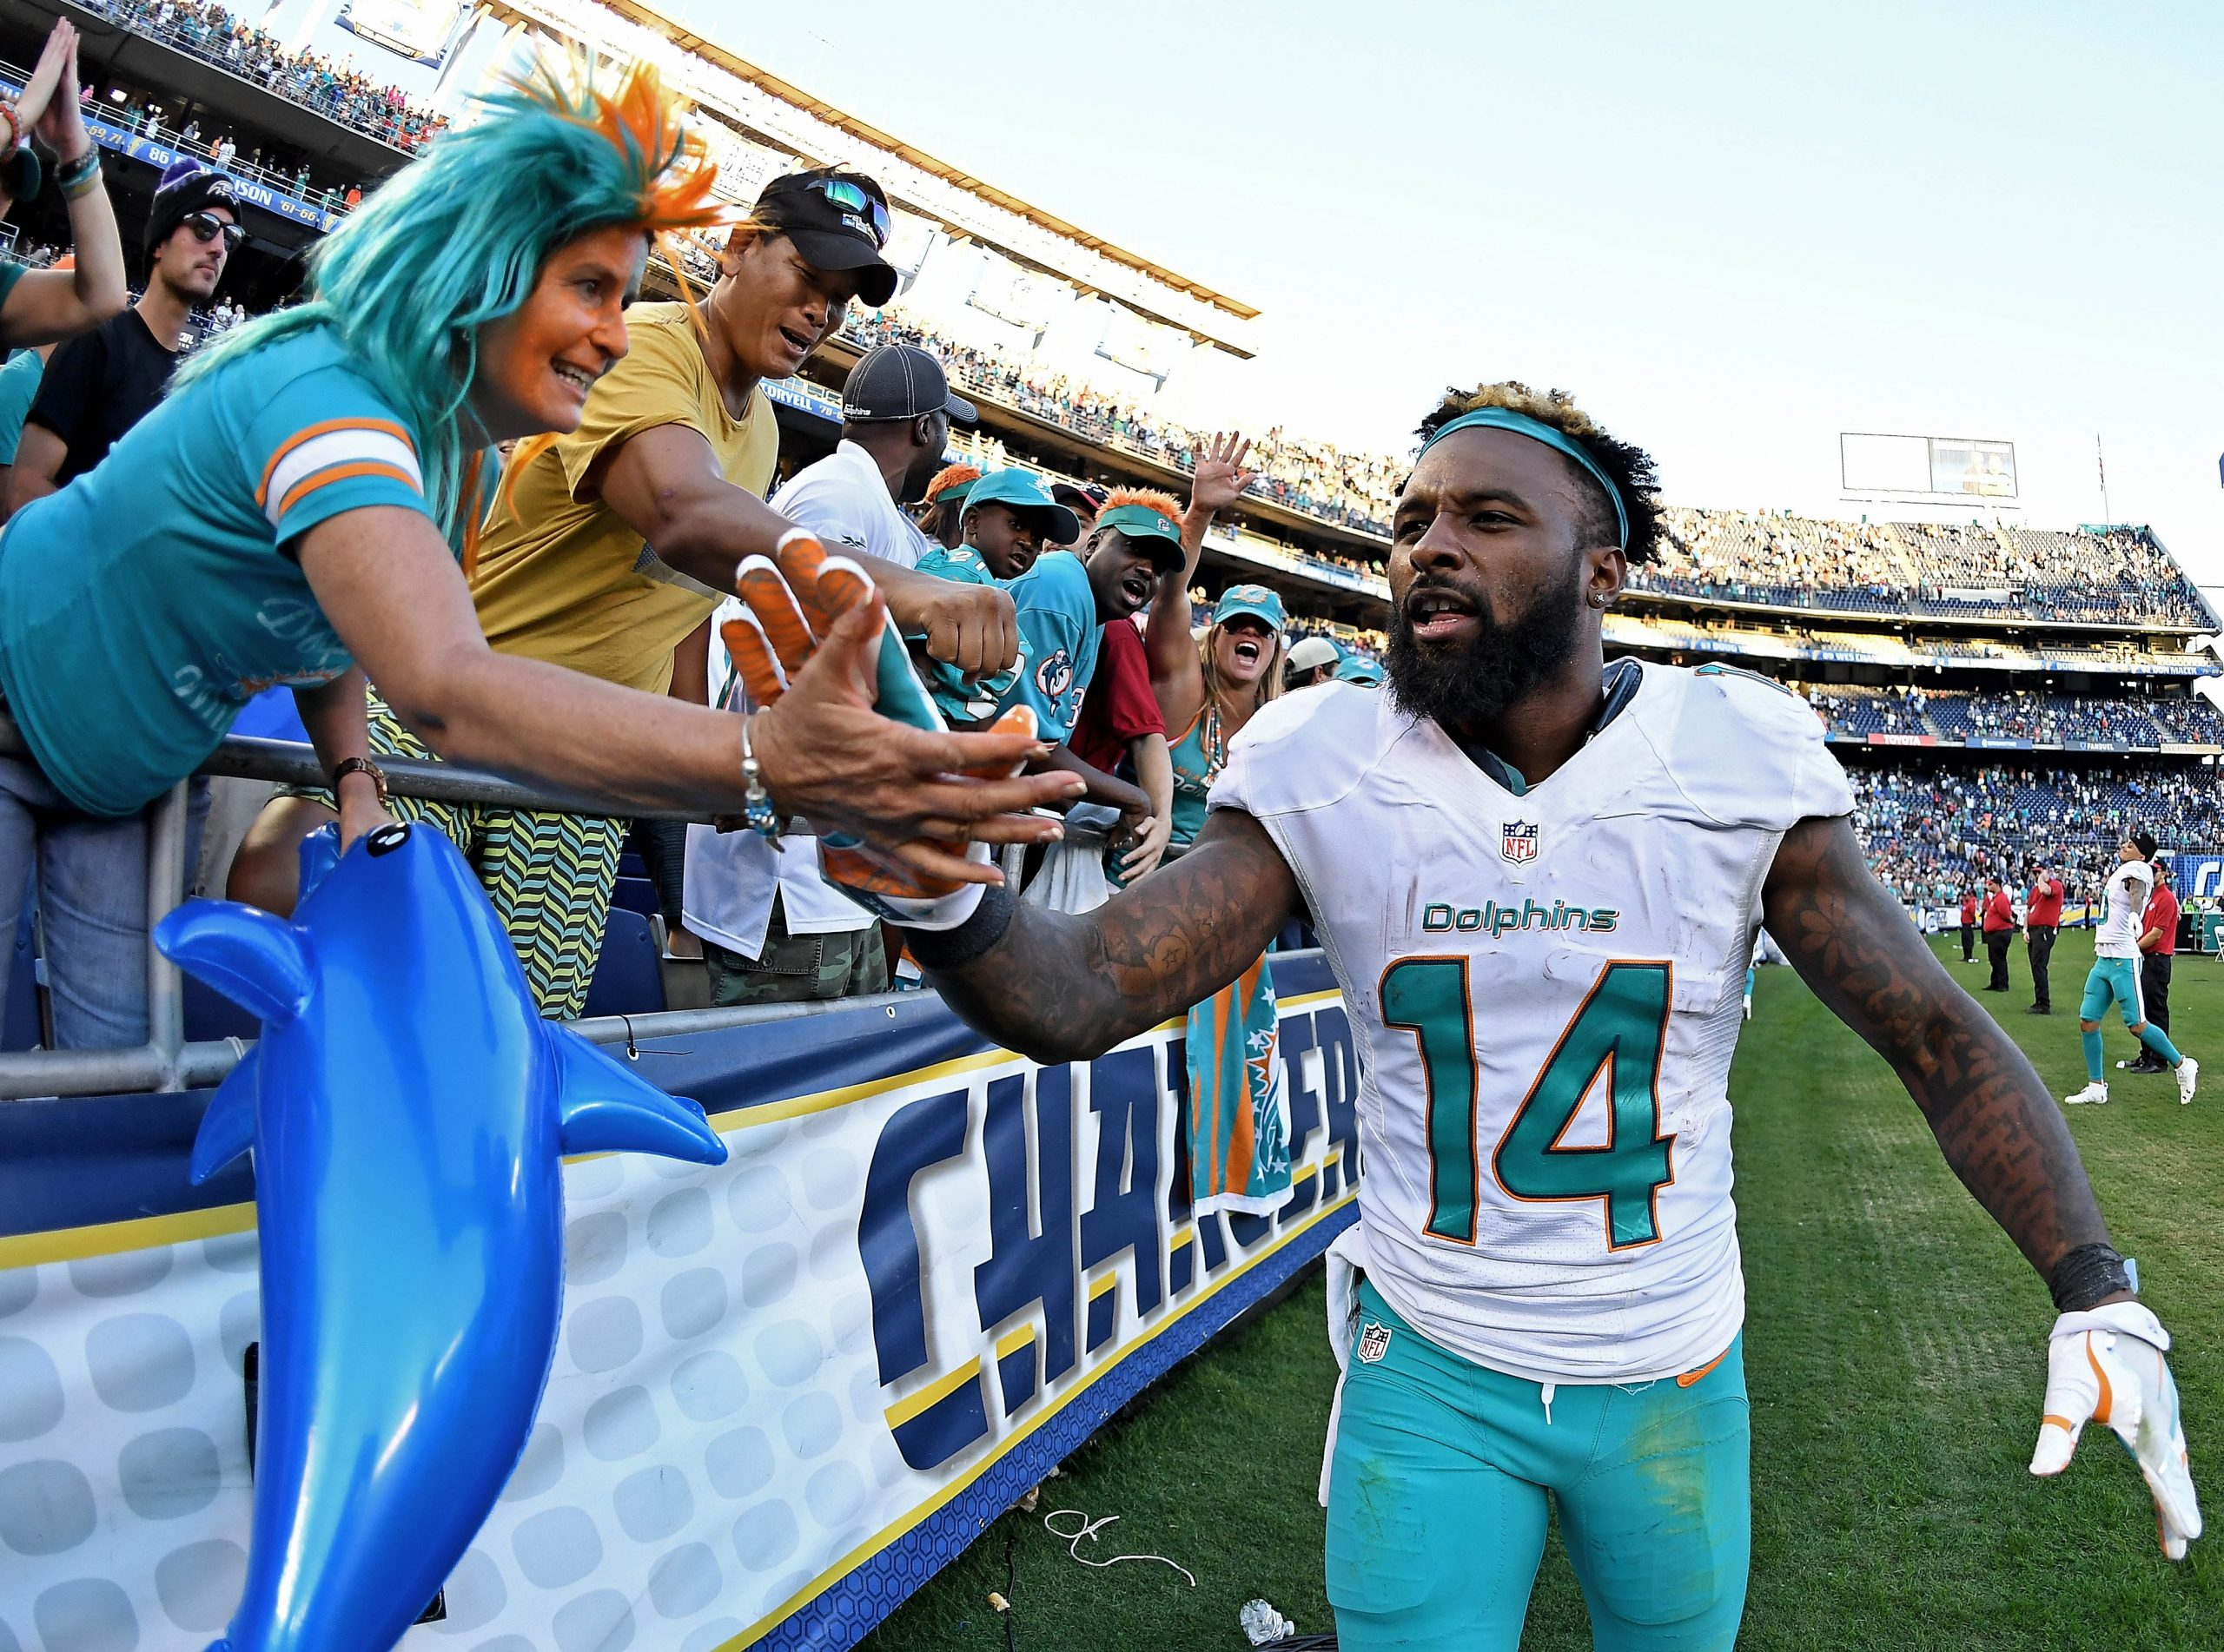 Five-Game Winning Streak Earns Miami Dolphins Respect From intended for Miami Dolphins Number Of Super Bowl Wins